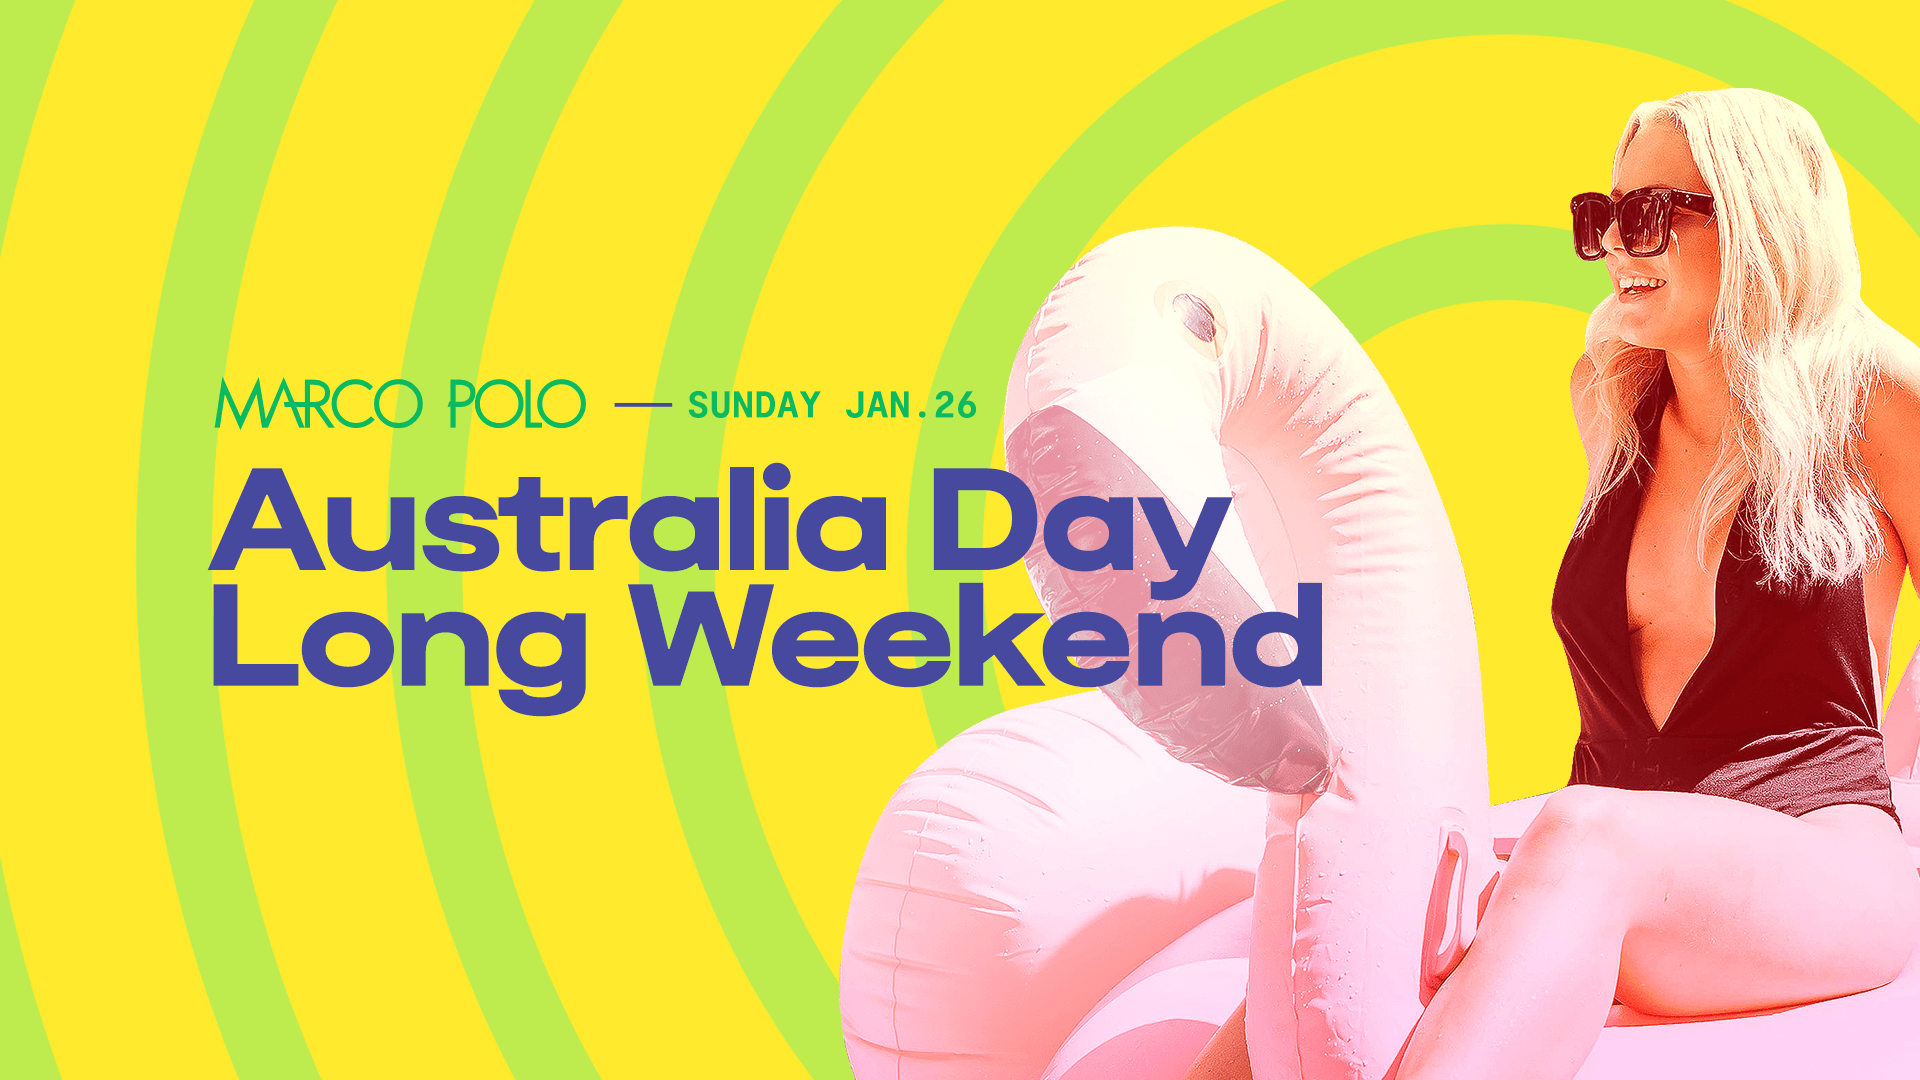 Tickets for Marco Polo | Australia Day Long Weekend in Sydney from Merivale